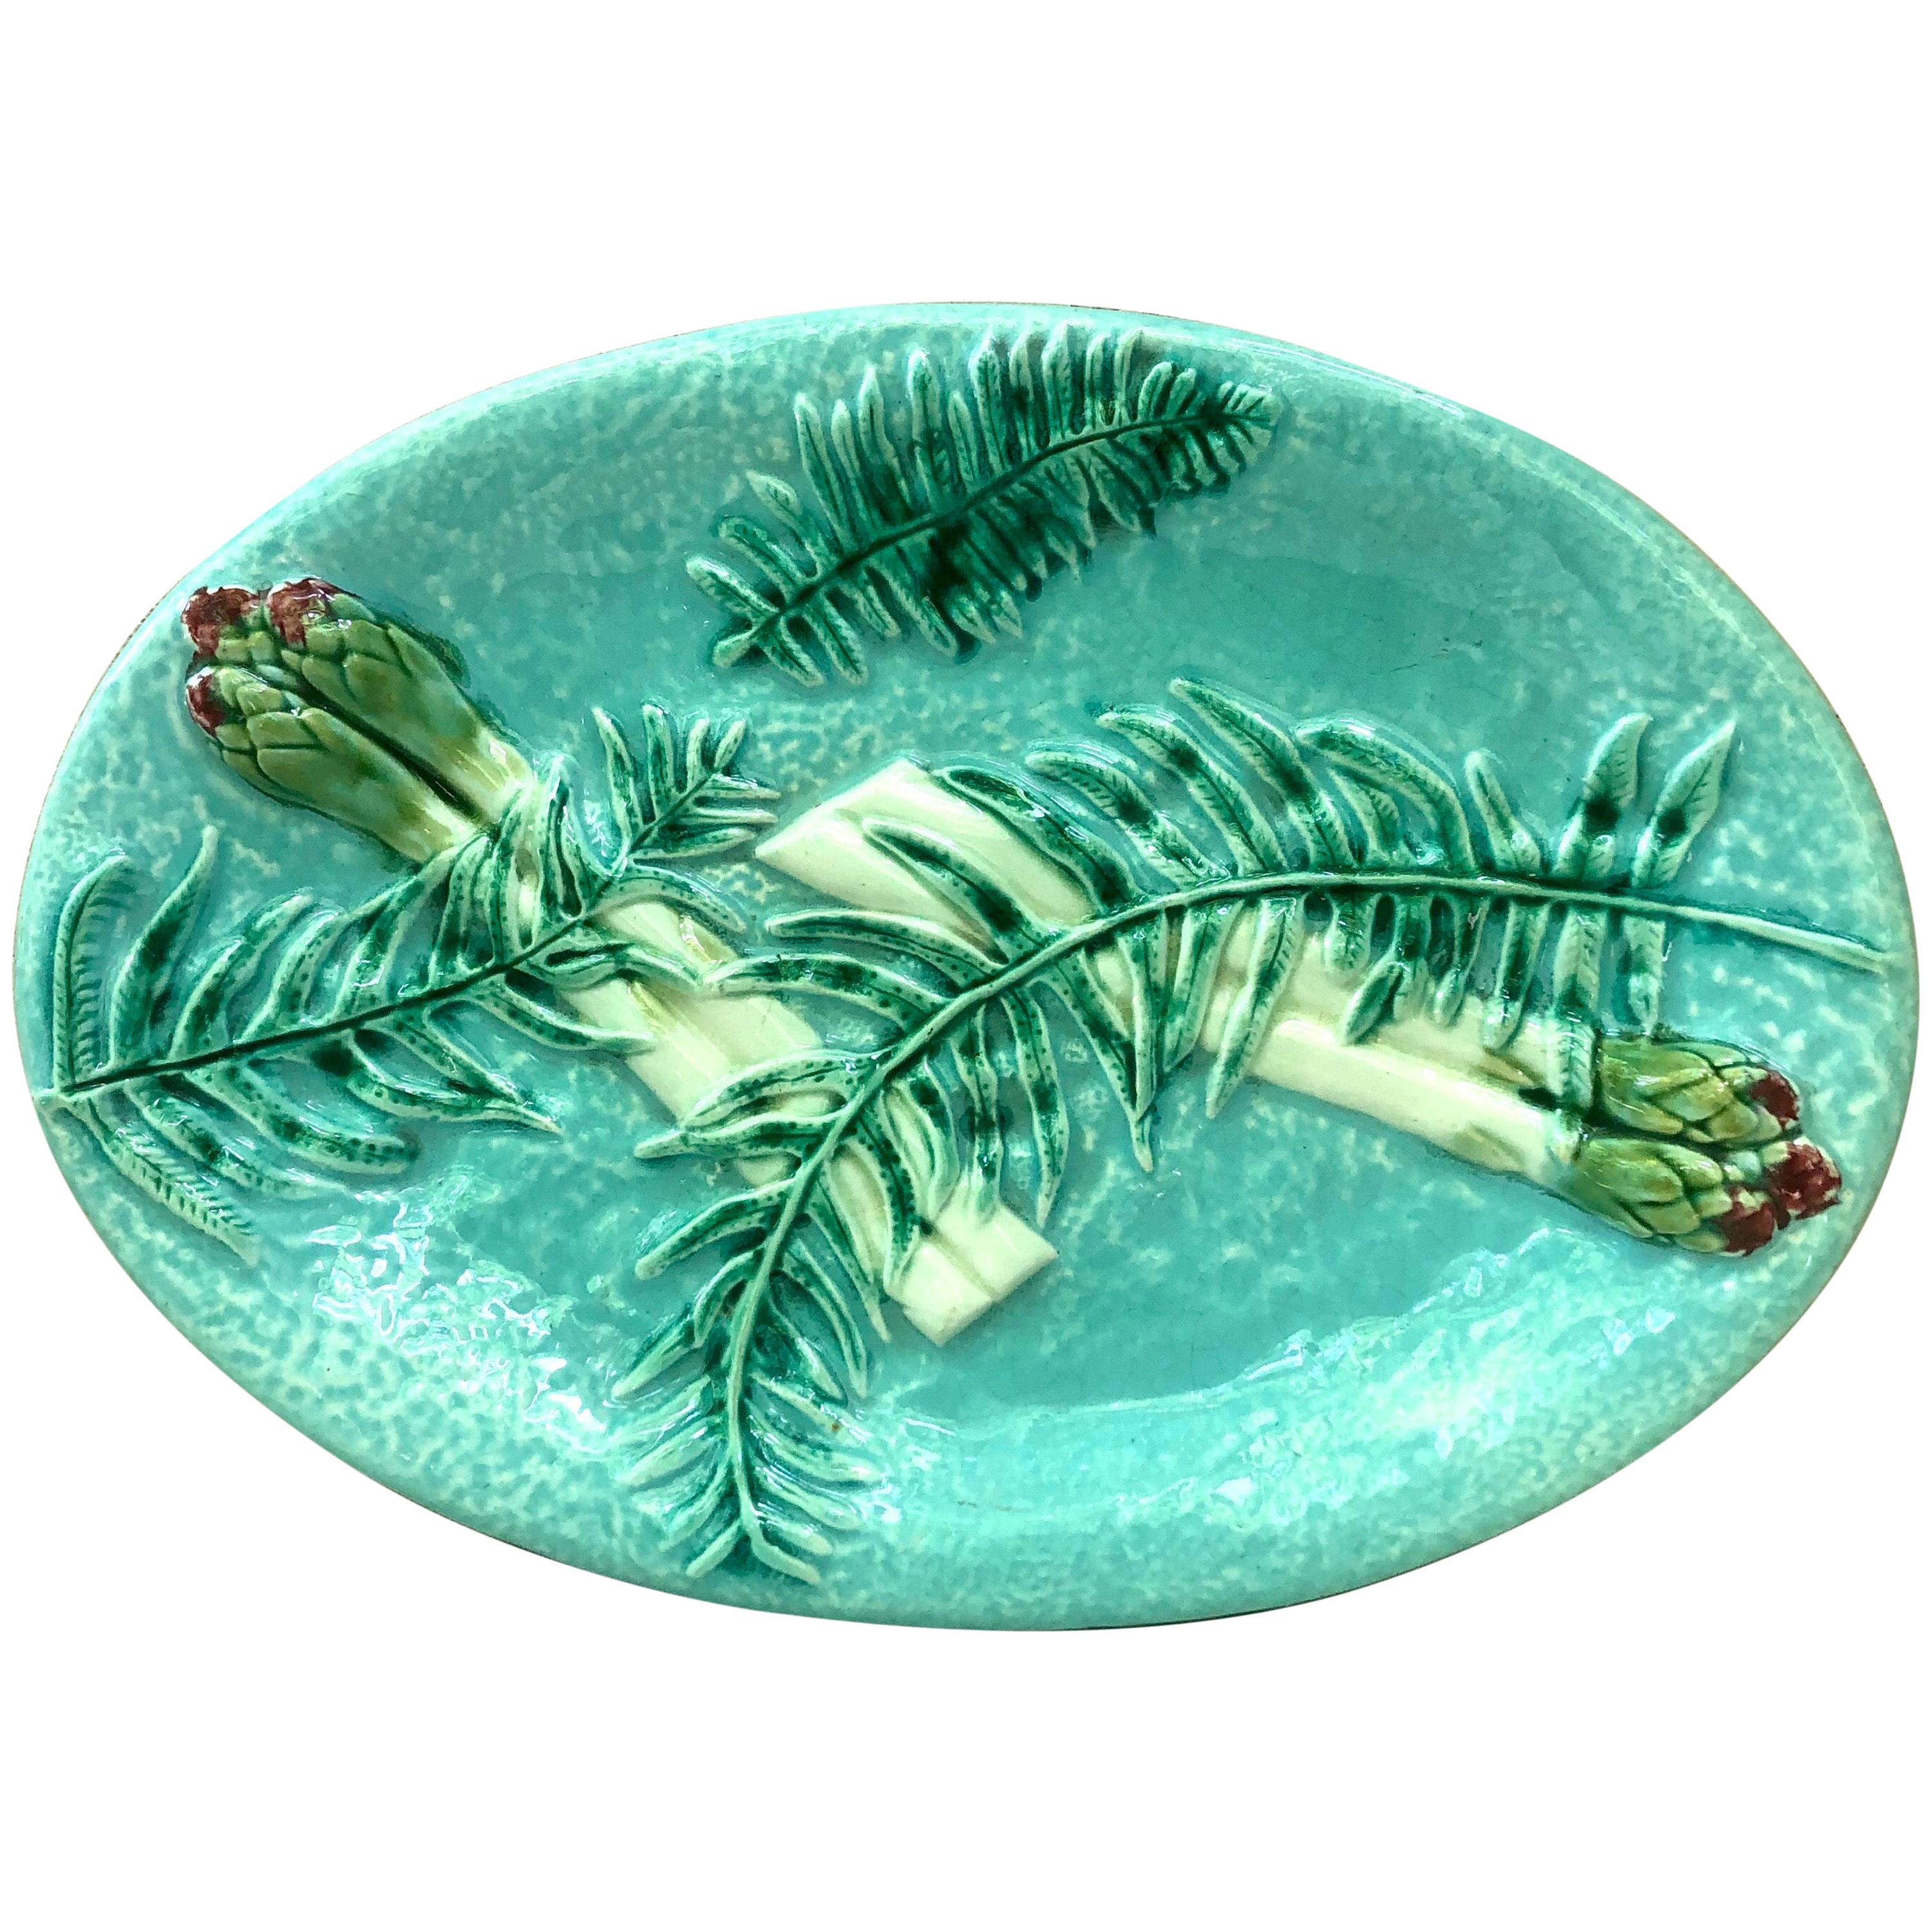 Rare Majolica Asparagus Platter with Fern Clairefontaine, circa 1880